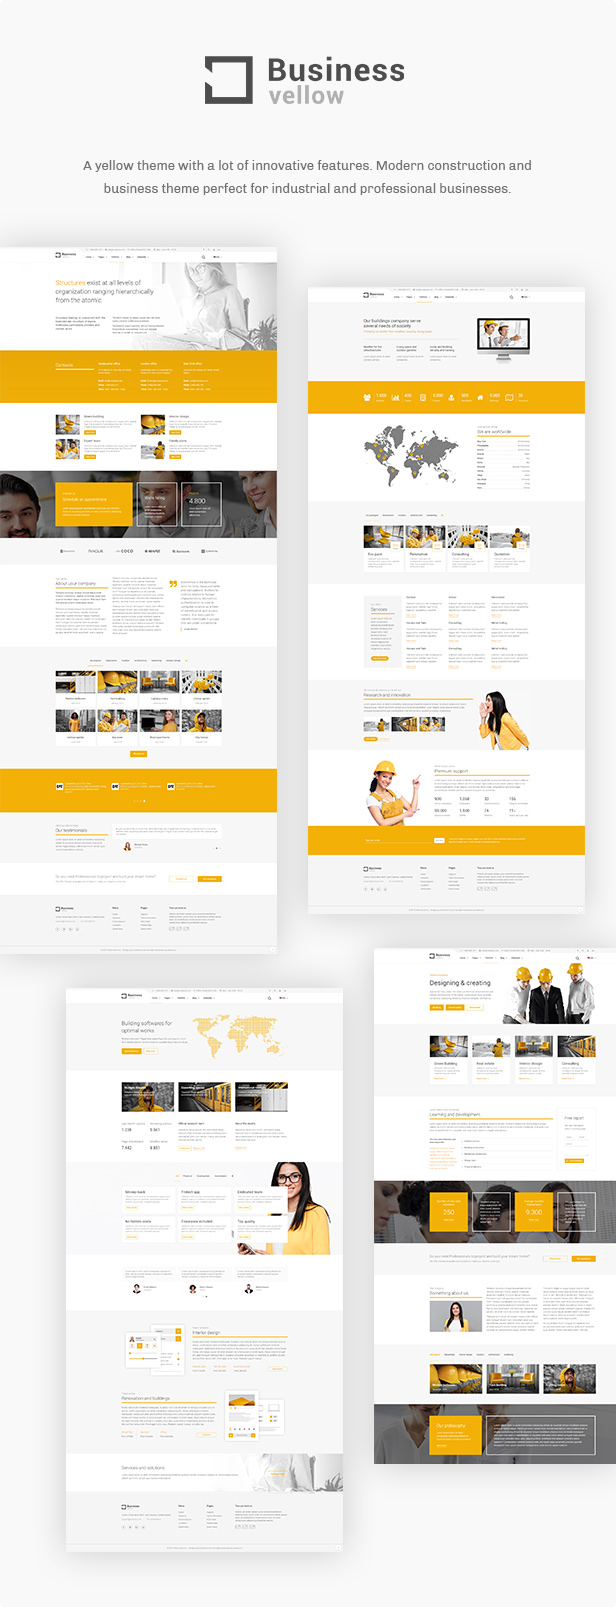 Yellow Business - Construction & Industrial Businesses   The Construction Theme - 2